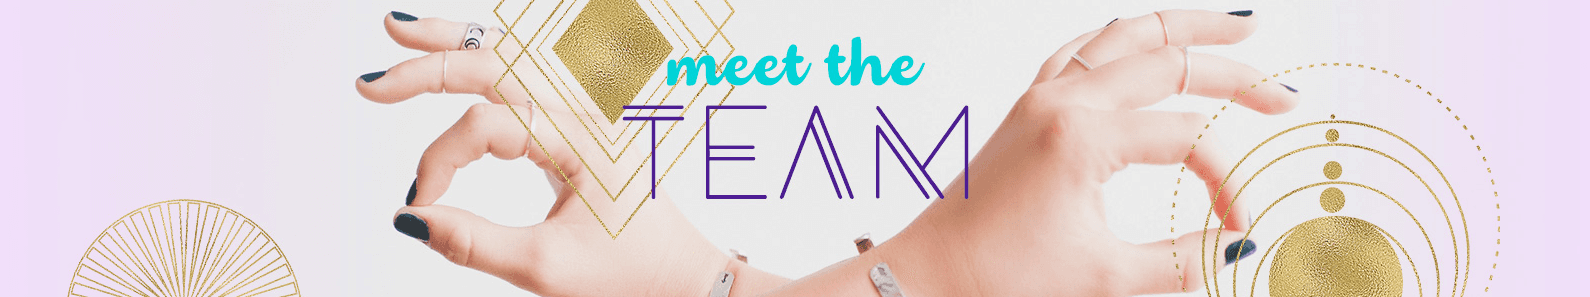 meet+the+team